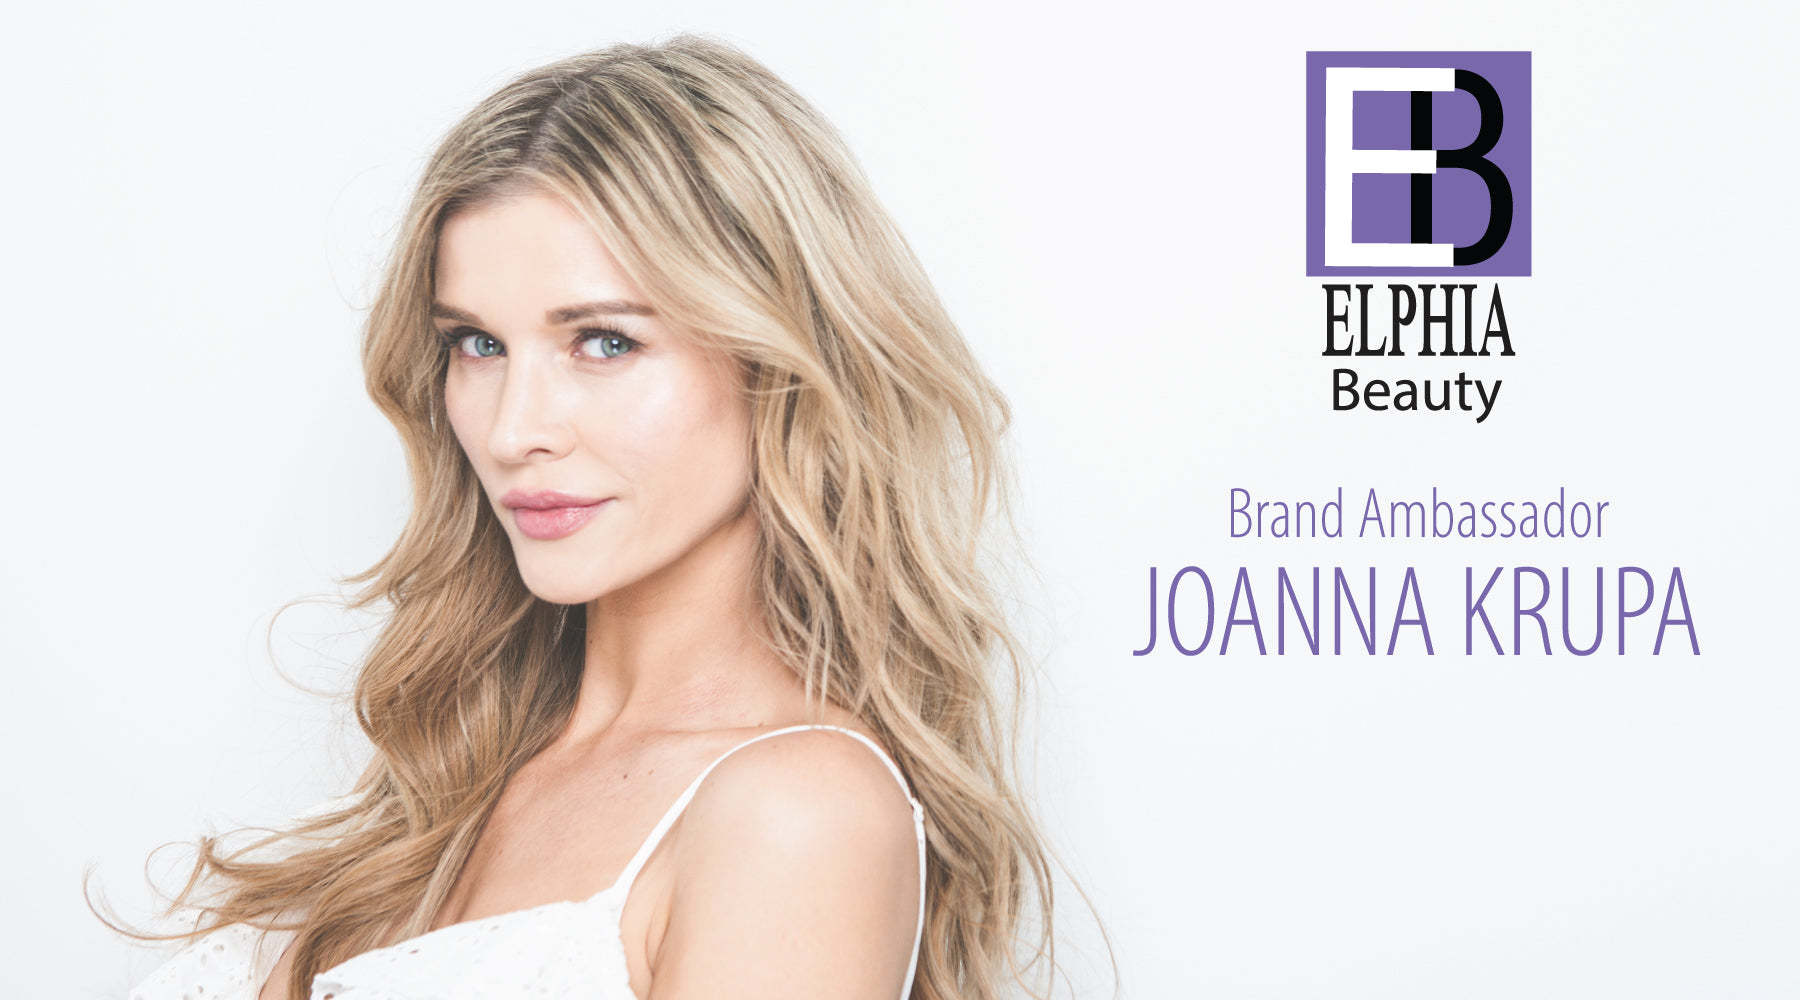 Joanna Krupa Brand Ambassador for Elphia Beauty